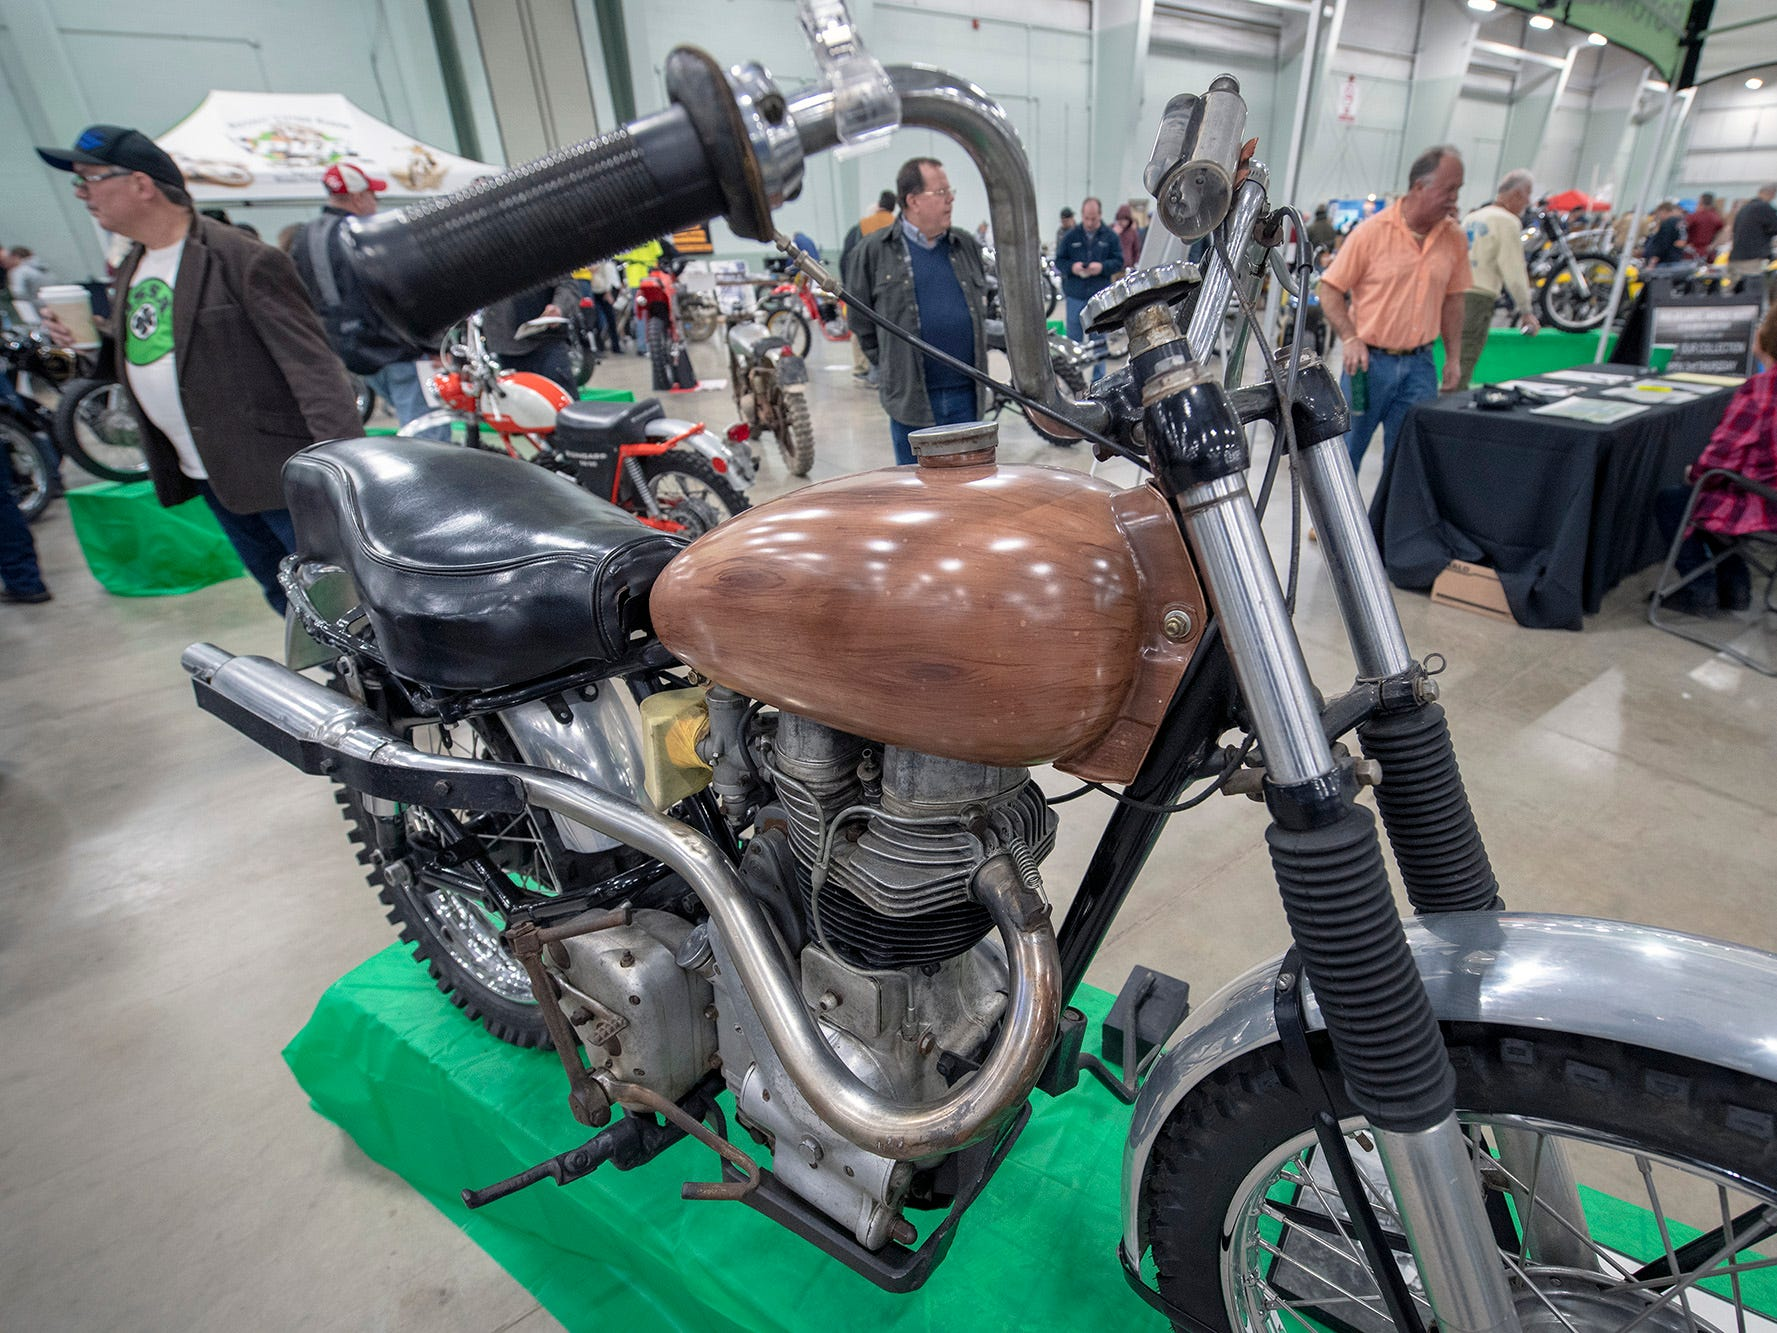 This 1955 Indian Woodsman, complete with a wood grained painted tank, was actually a Royal Enfield, but labeled and sold as an Indian. The bike that originated near Philadelphia was one of the display bikes during the The Potomac Vintage Riders' York Swap Meet Sunday January 27, 2019 at the York Expo Center.